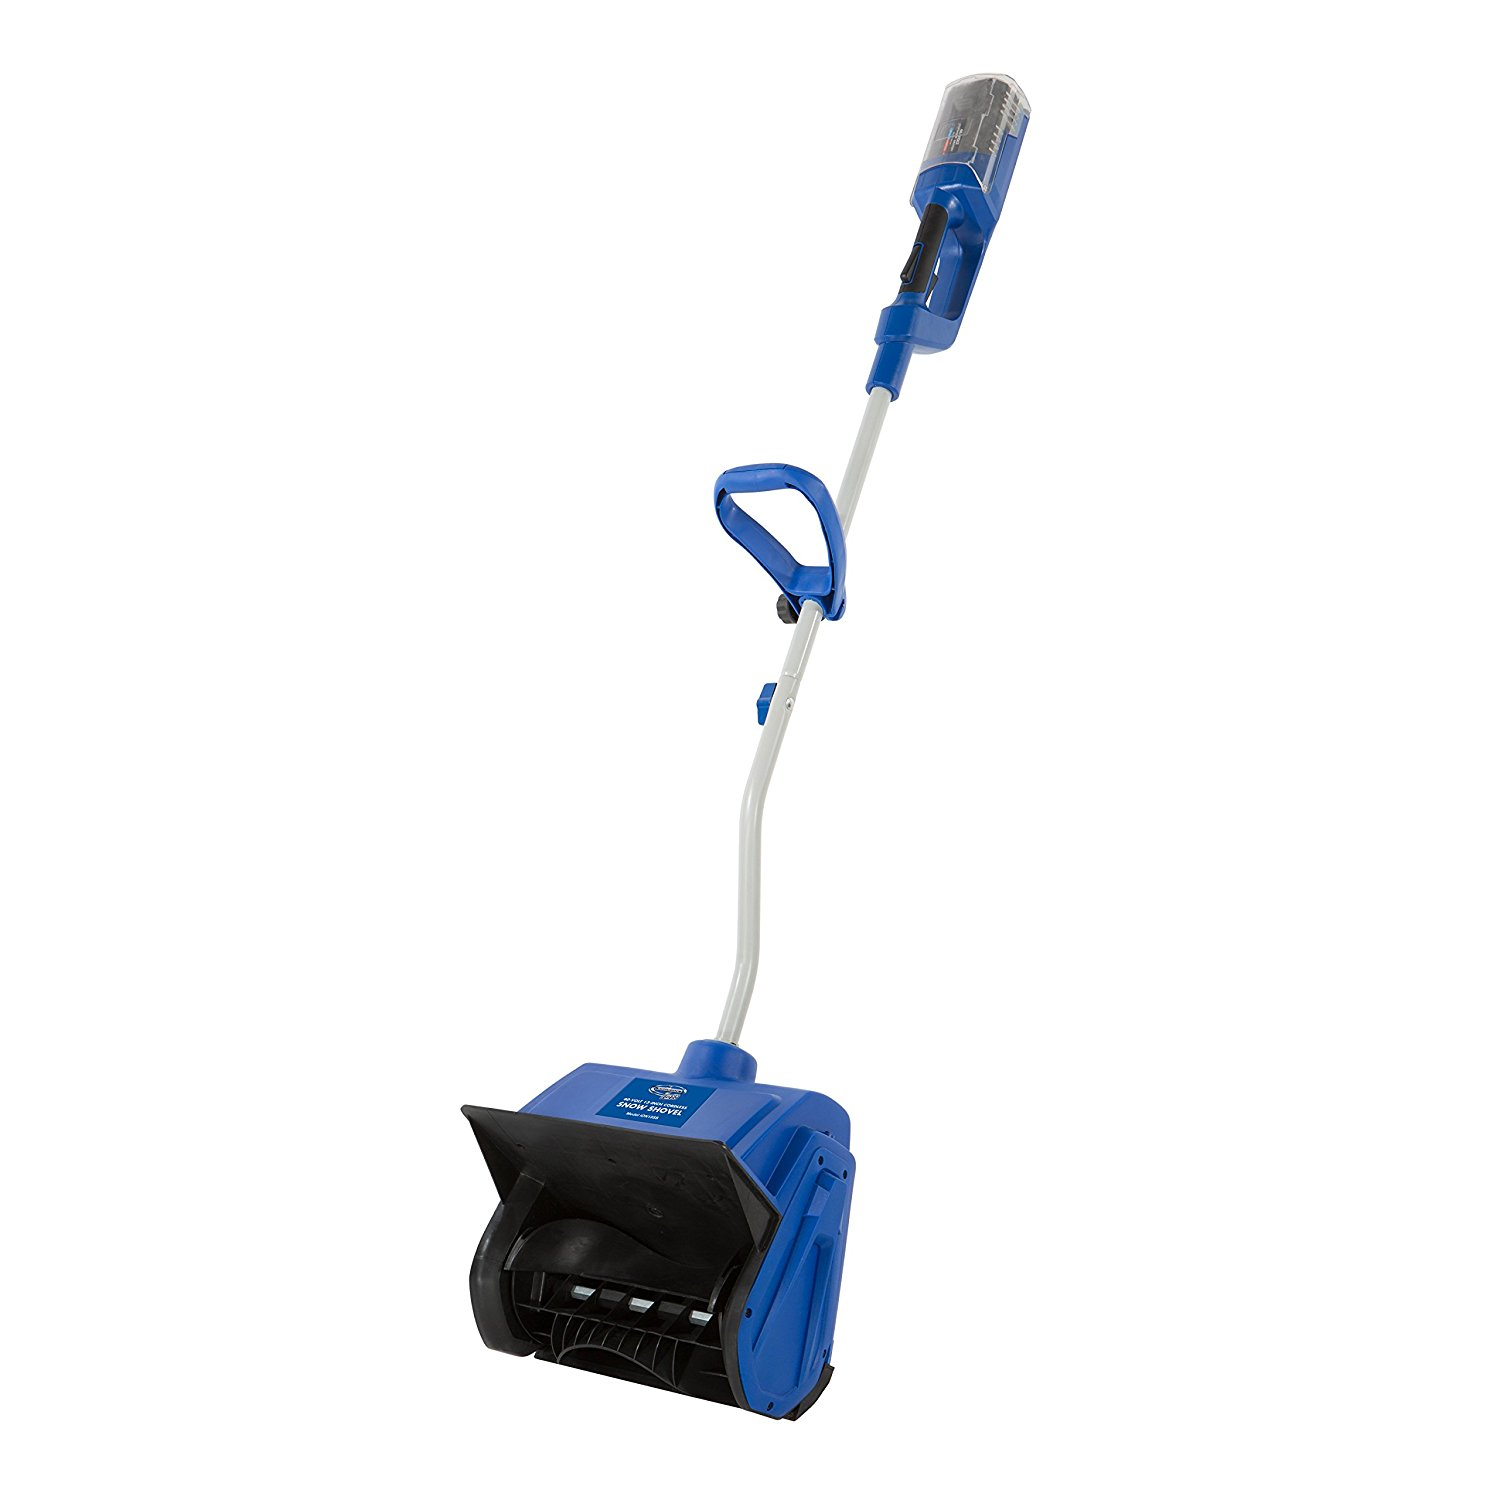 Snow Joe iON13SS iON 40-Volt Cordless 13-inch Brushless Snow Shovel with Rechargeable Ecosharp Lithium-Ion Battery.